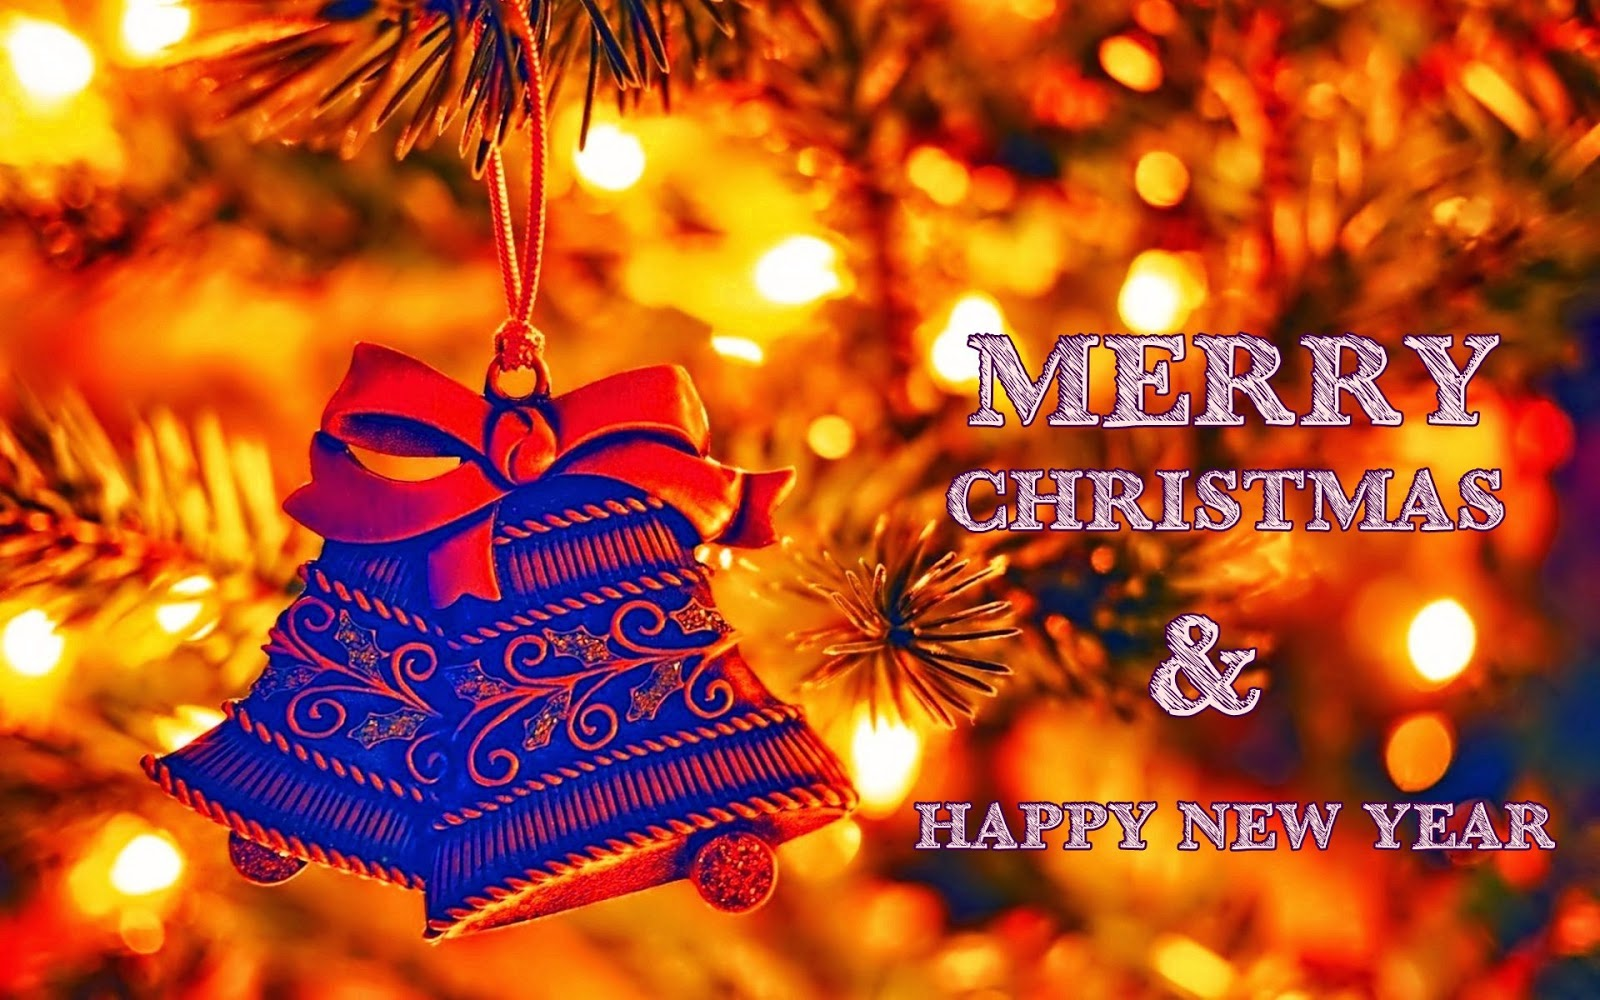 Download-happy New Year Hd Images, Wallpapers, Photos - Merry Christmas And Happy New Year 2018 , HD Wallpaper & Backgrounds